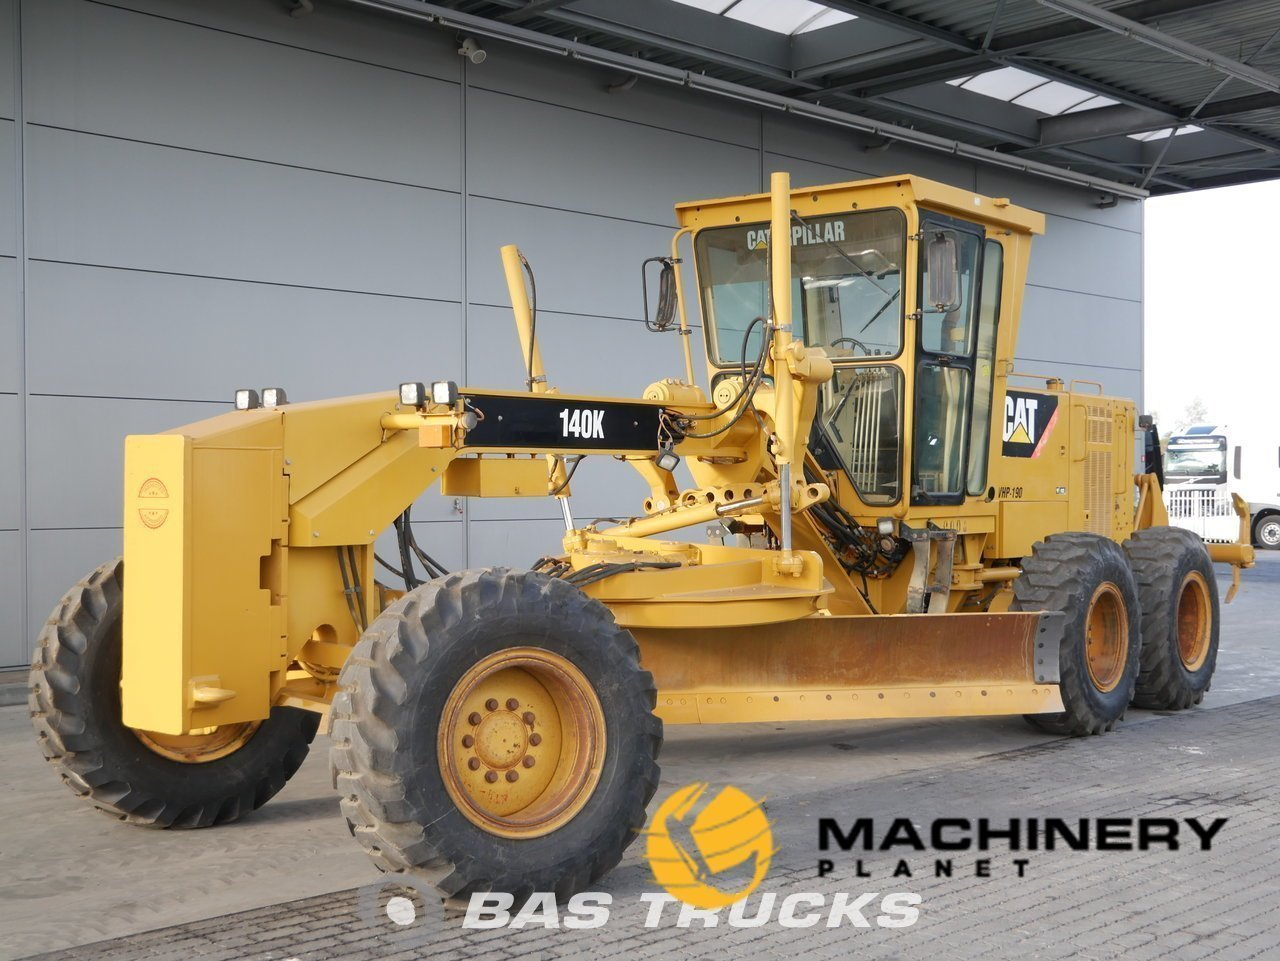 Used-Construction-equipment-Caterpillar-140K-6X4-2011_138137_1-1554128457714_5ca21e49ae406-1.jpg